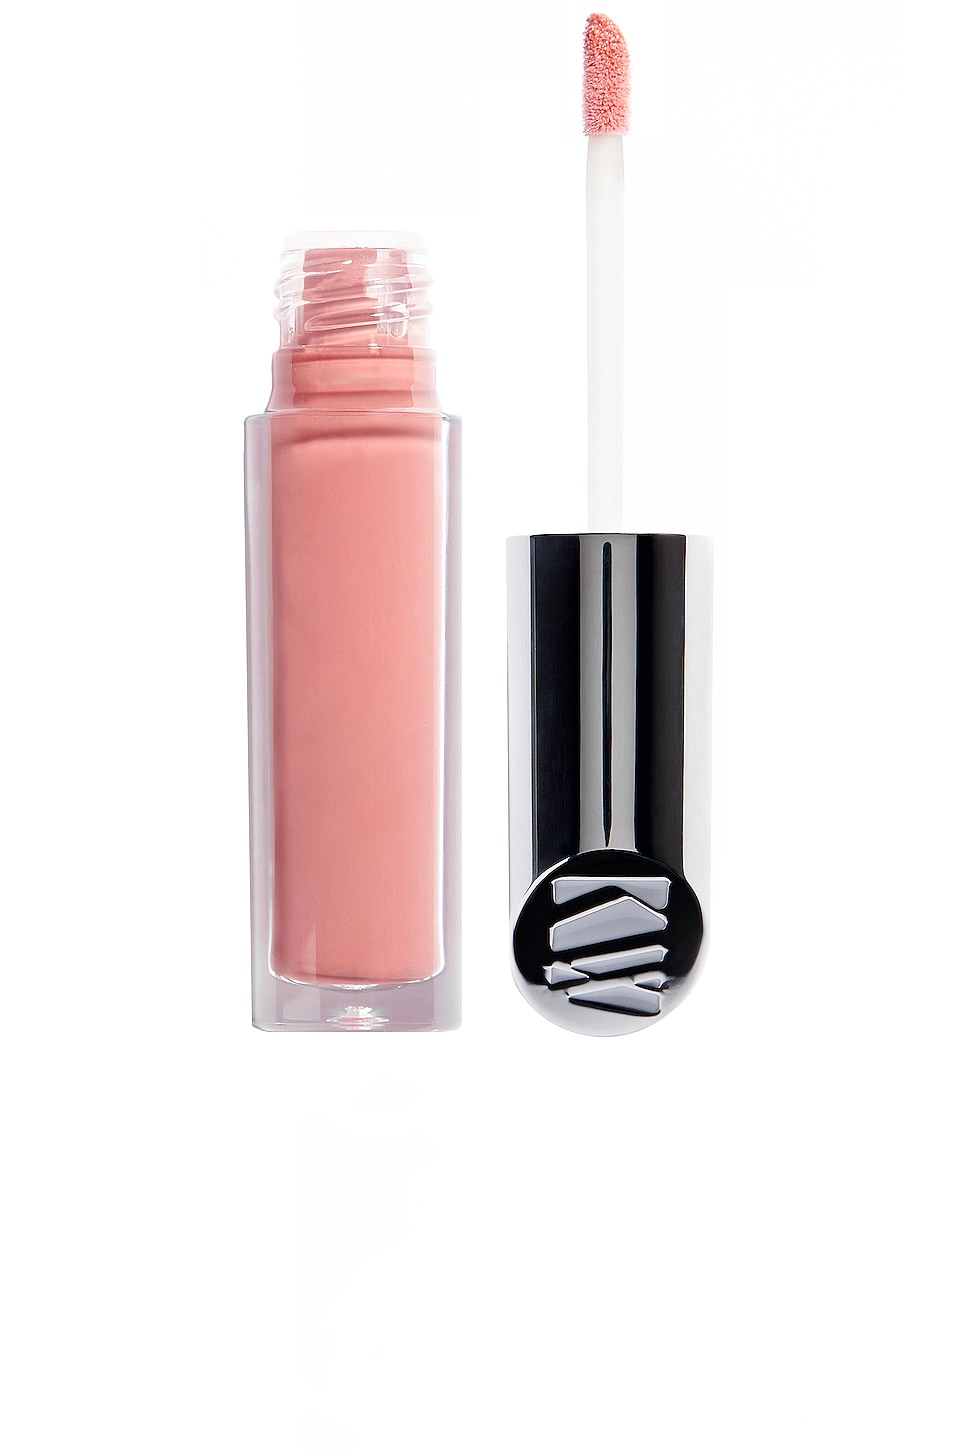 Kjaer Weis Lip Gloss in Affinity